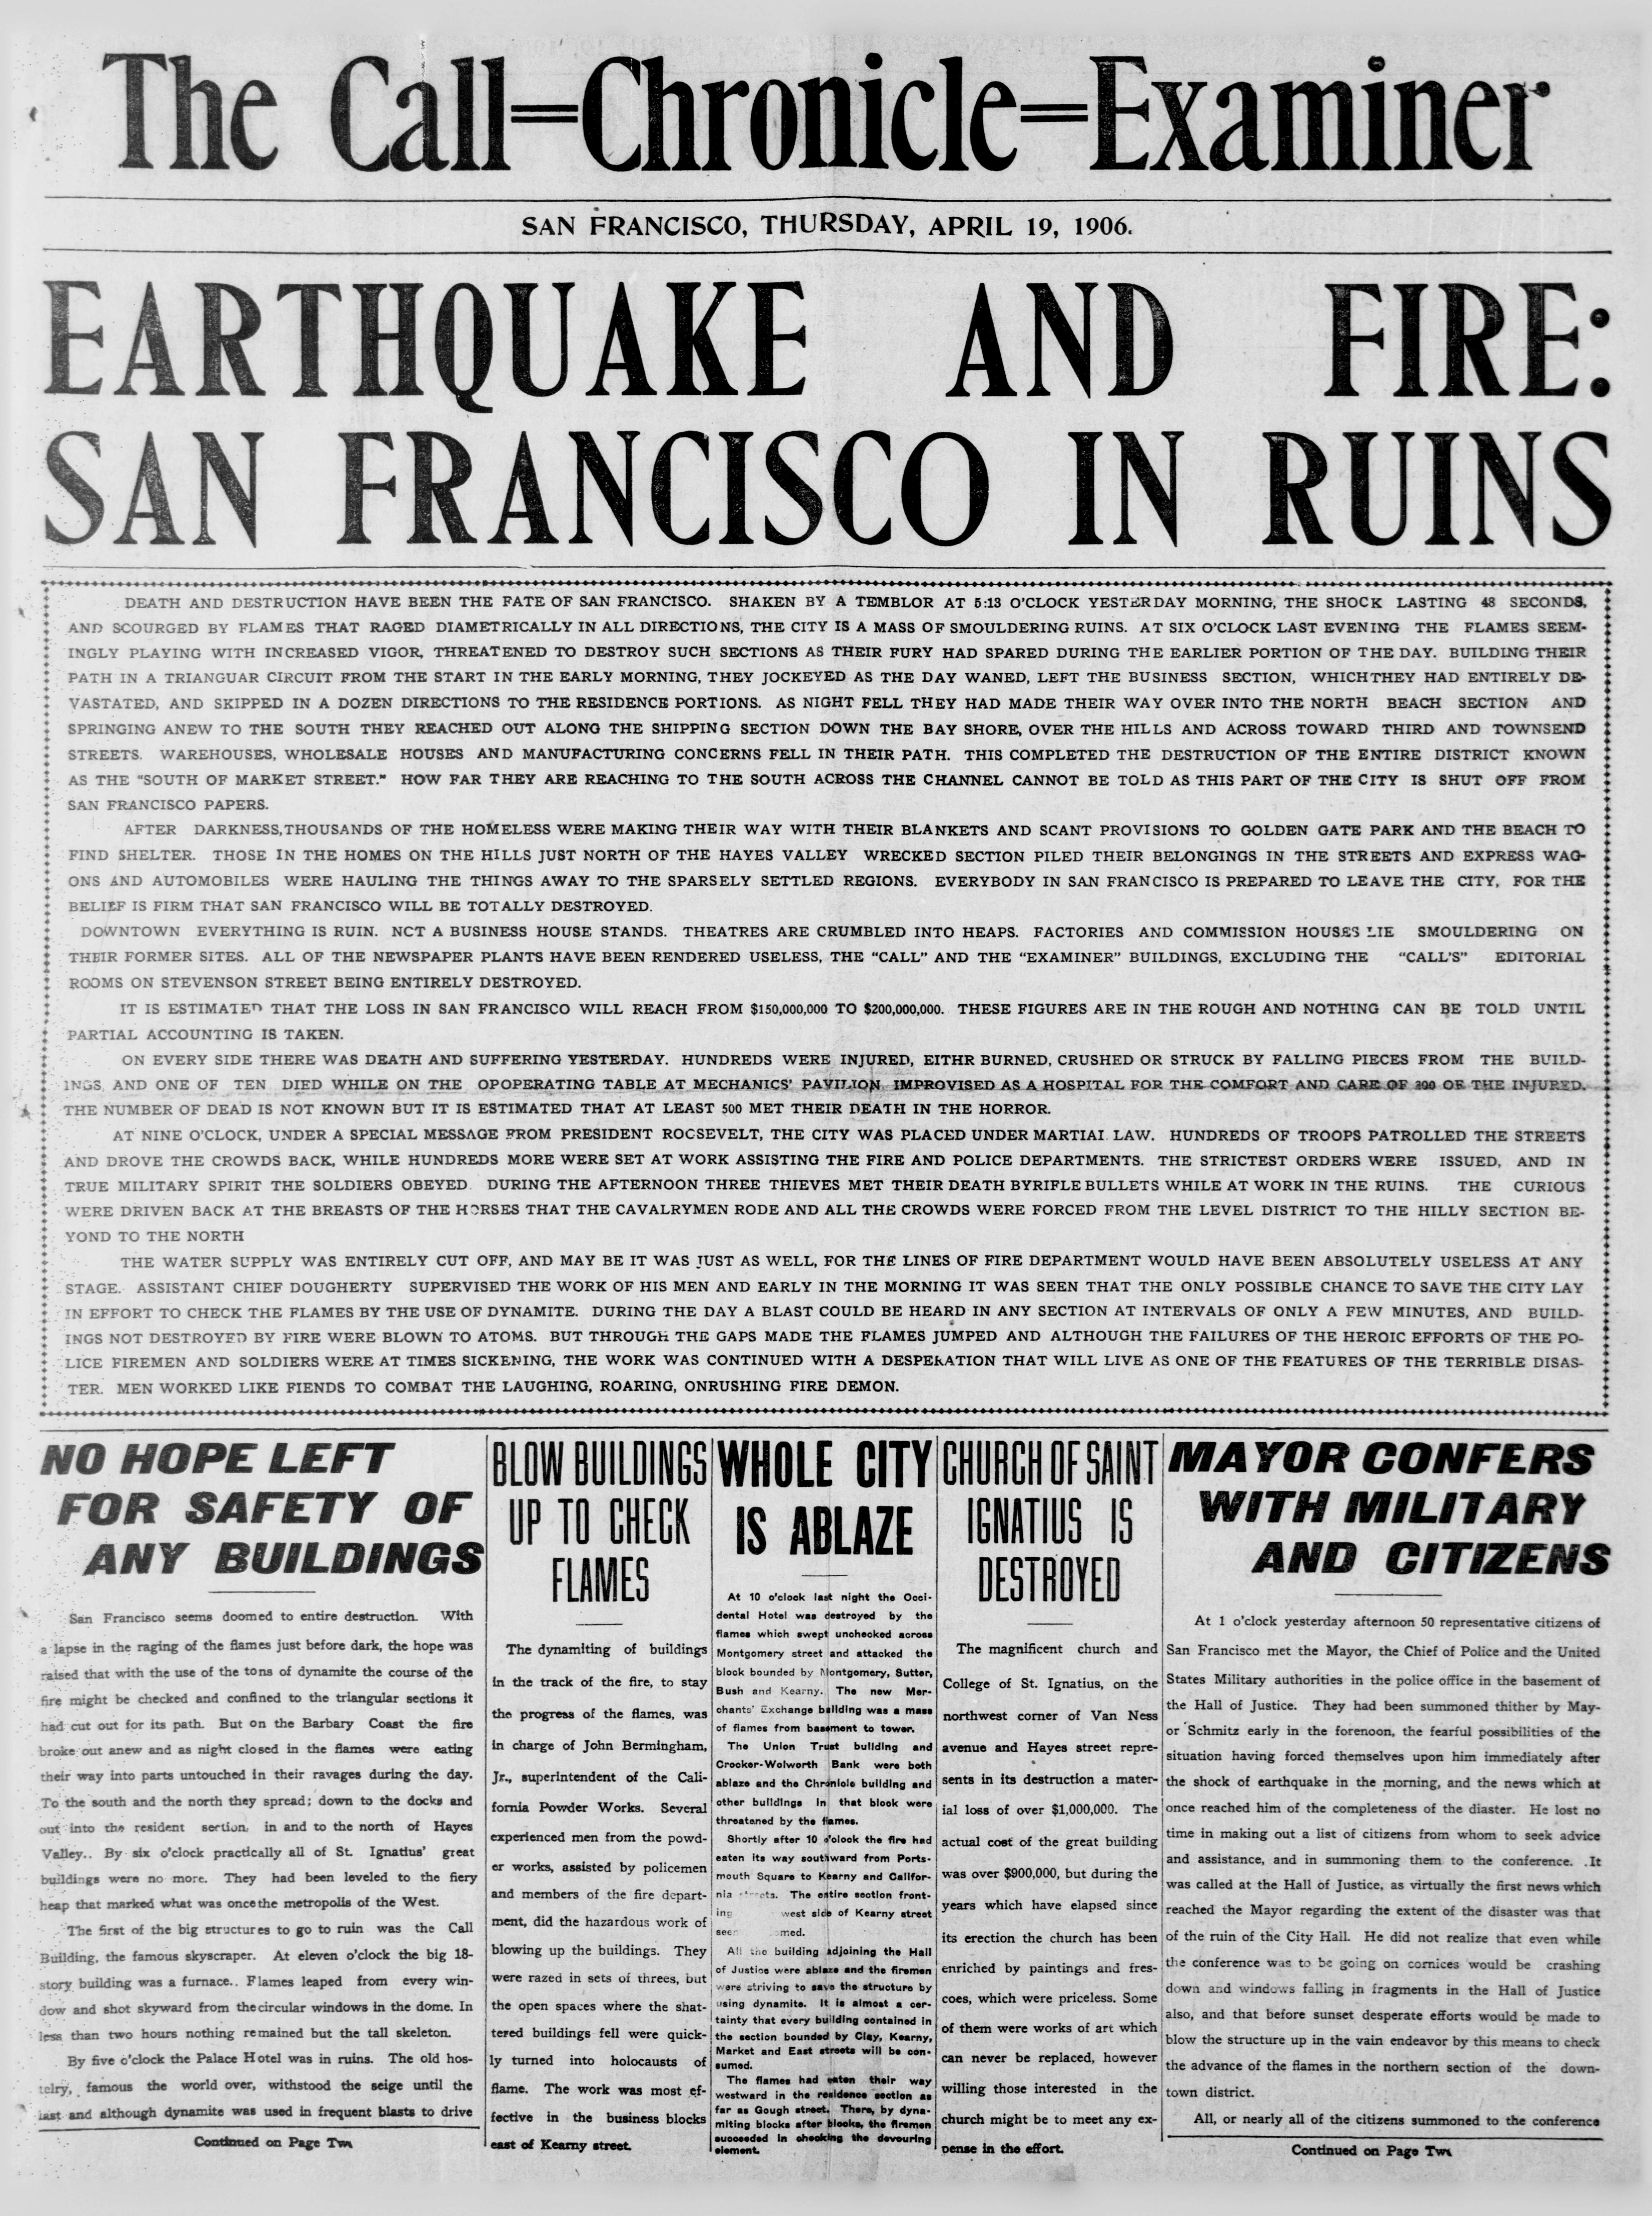 The Call-Chronicle-Examiner. (San Francisco, Calif.), April 19, 1906. Front page news: The great San Francisco fire of 1906.